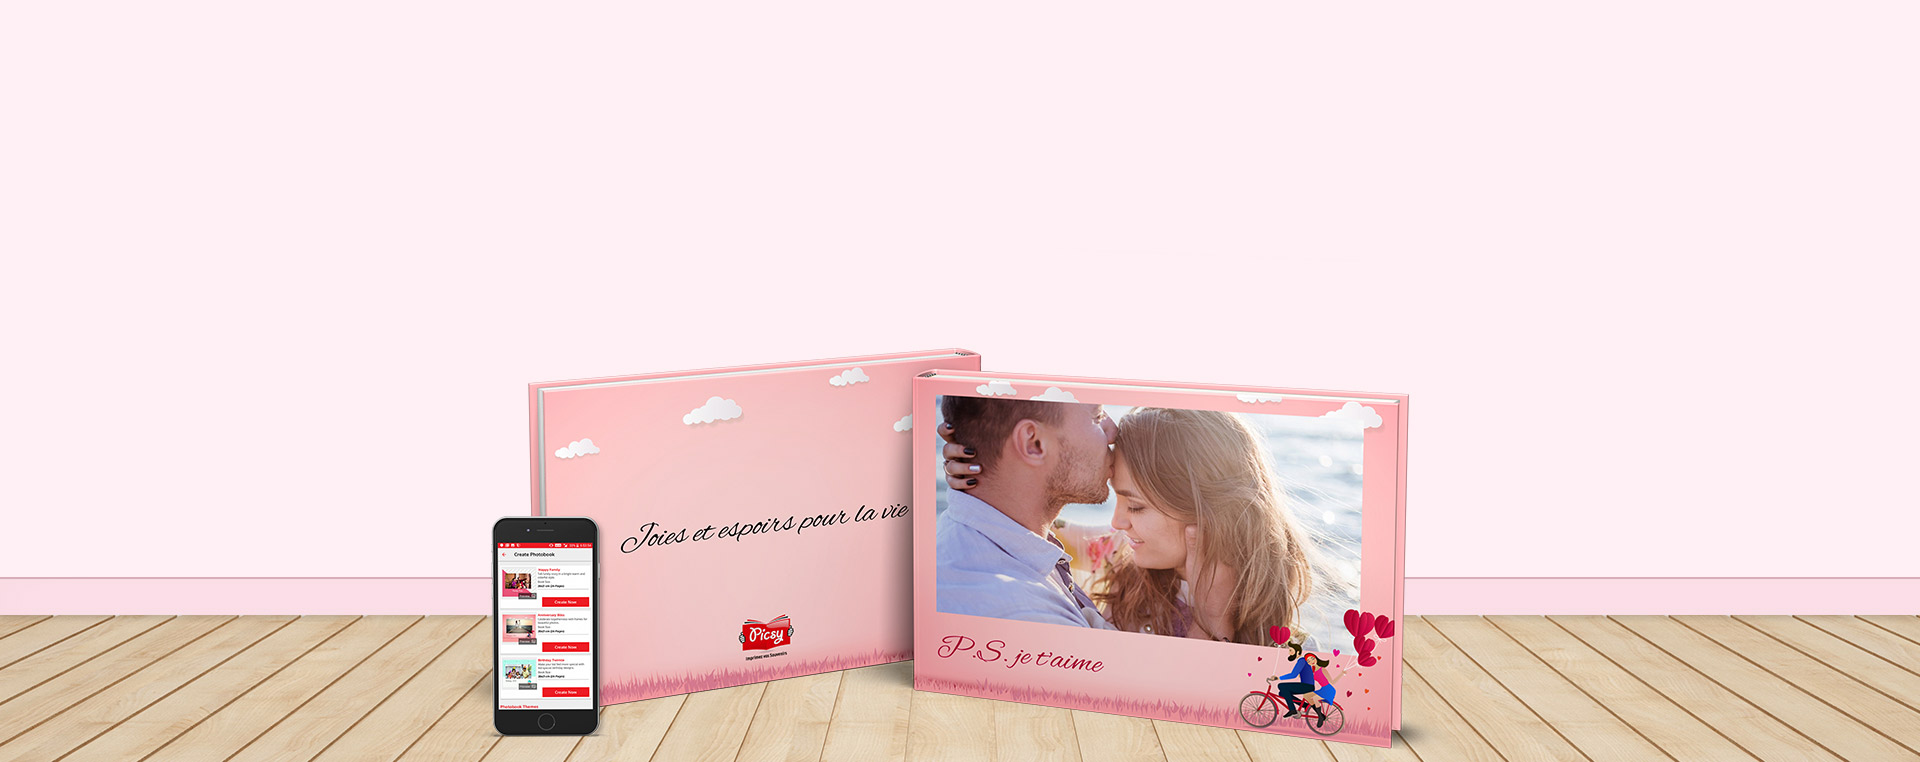 Picsy Personalized Photo Gifts - Photo Books & Photo Albums